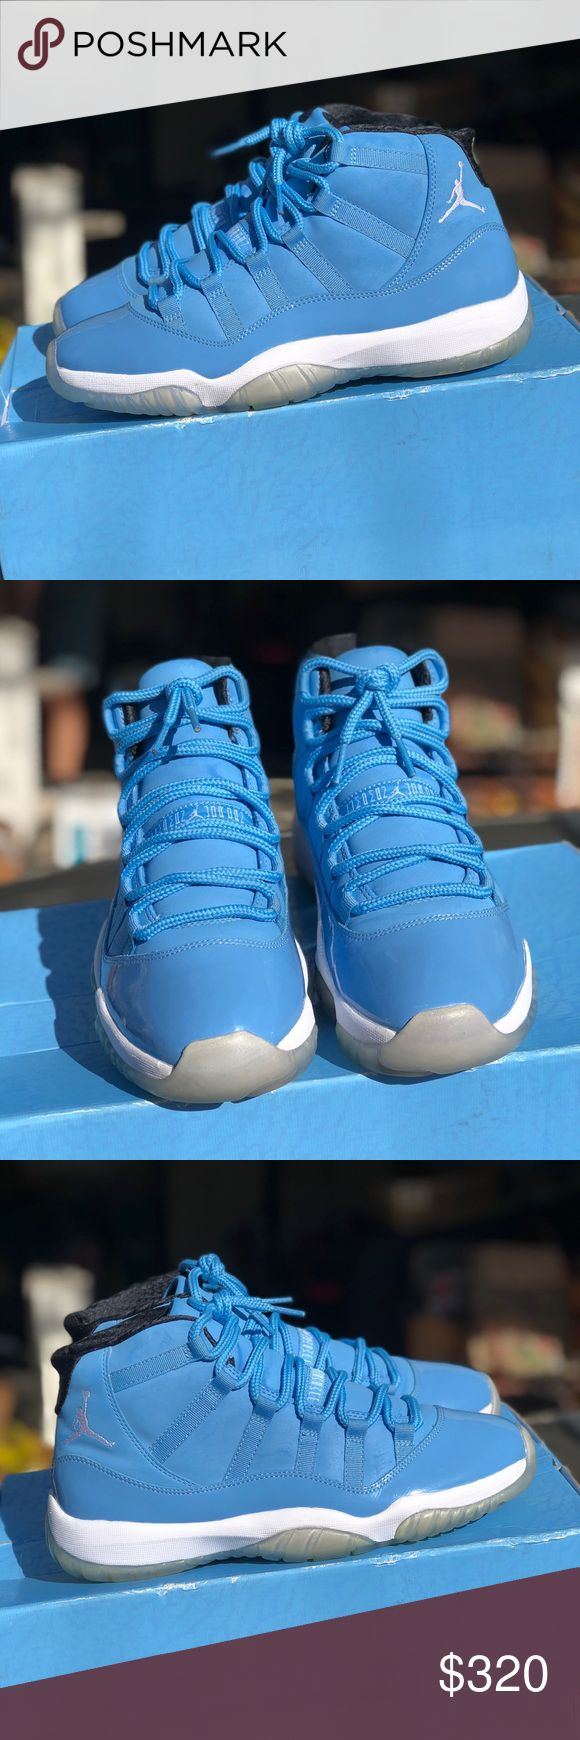 Air Jordan 11 'Pantone' Great Condition  OG All Jordan Shoes Sneakers